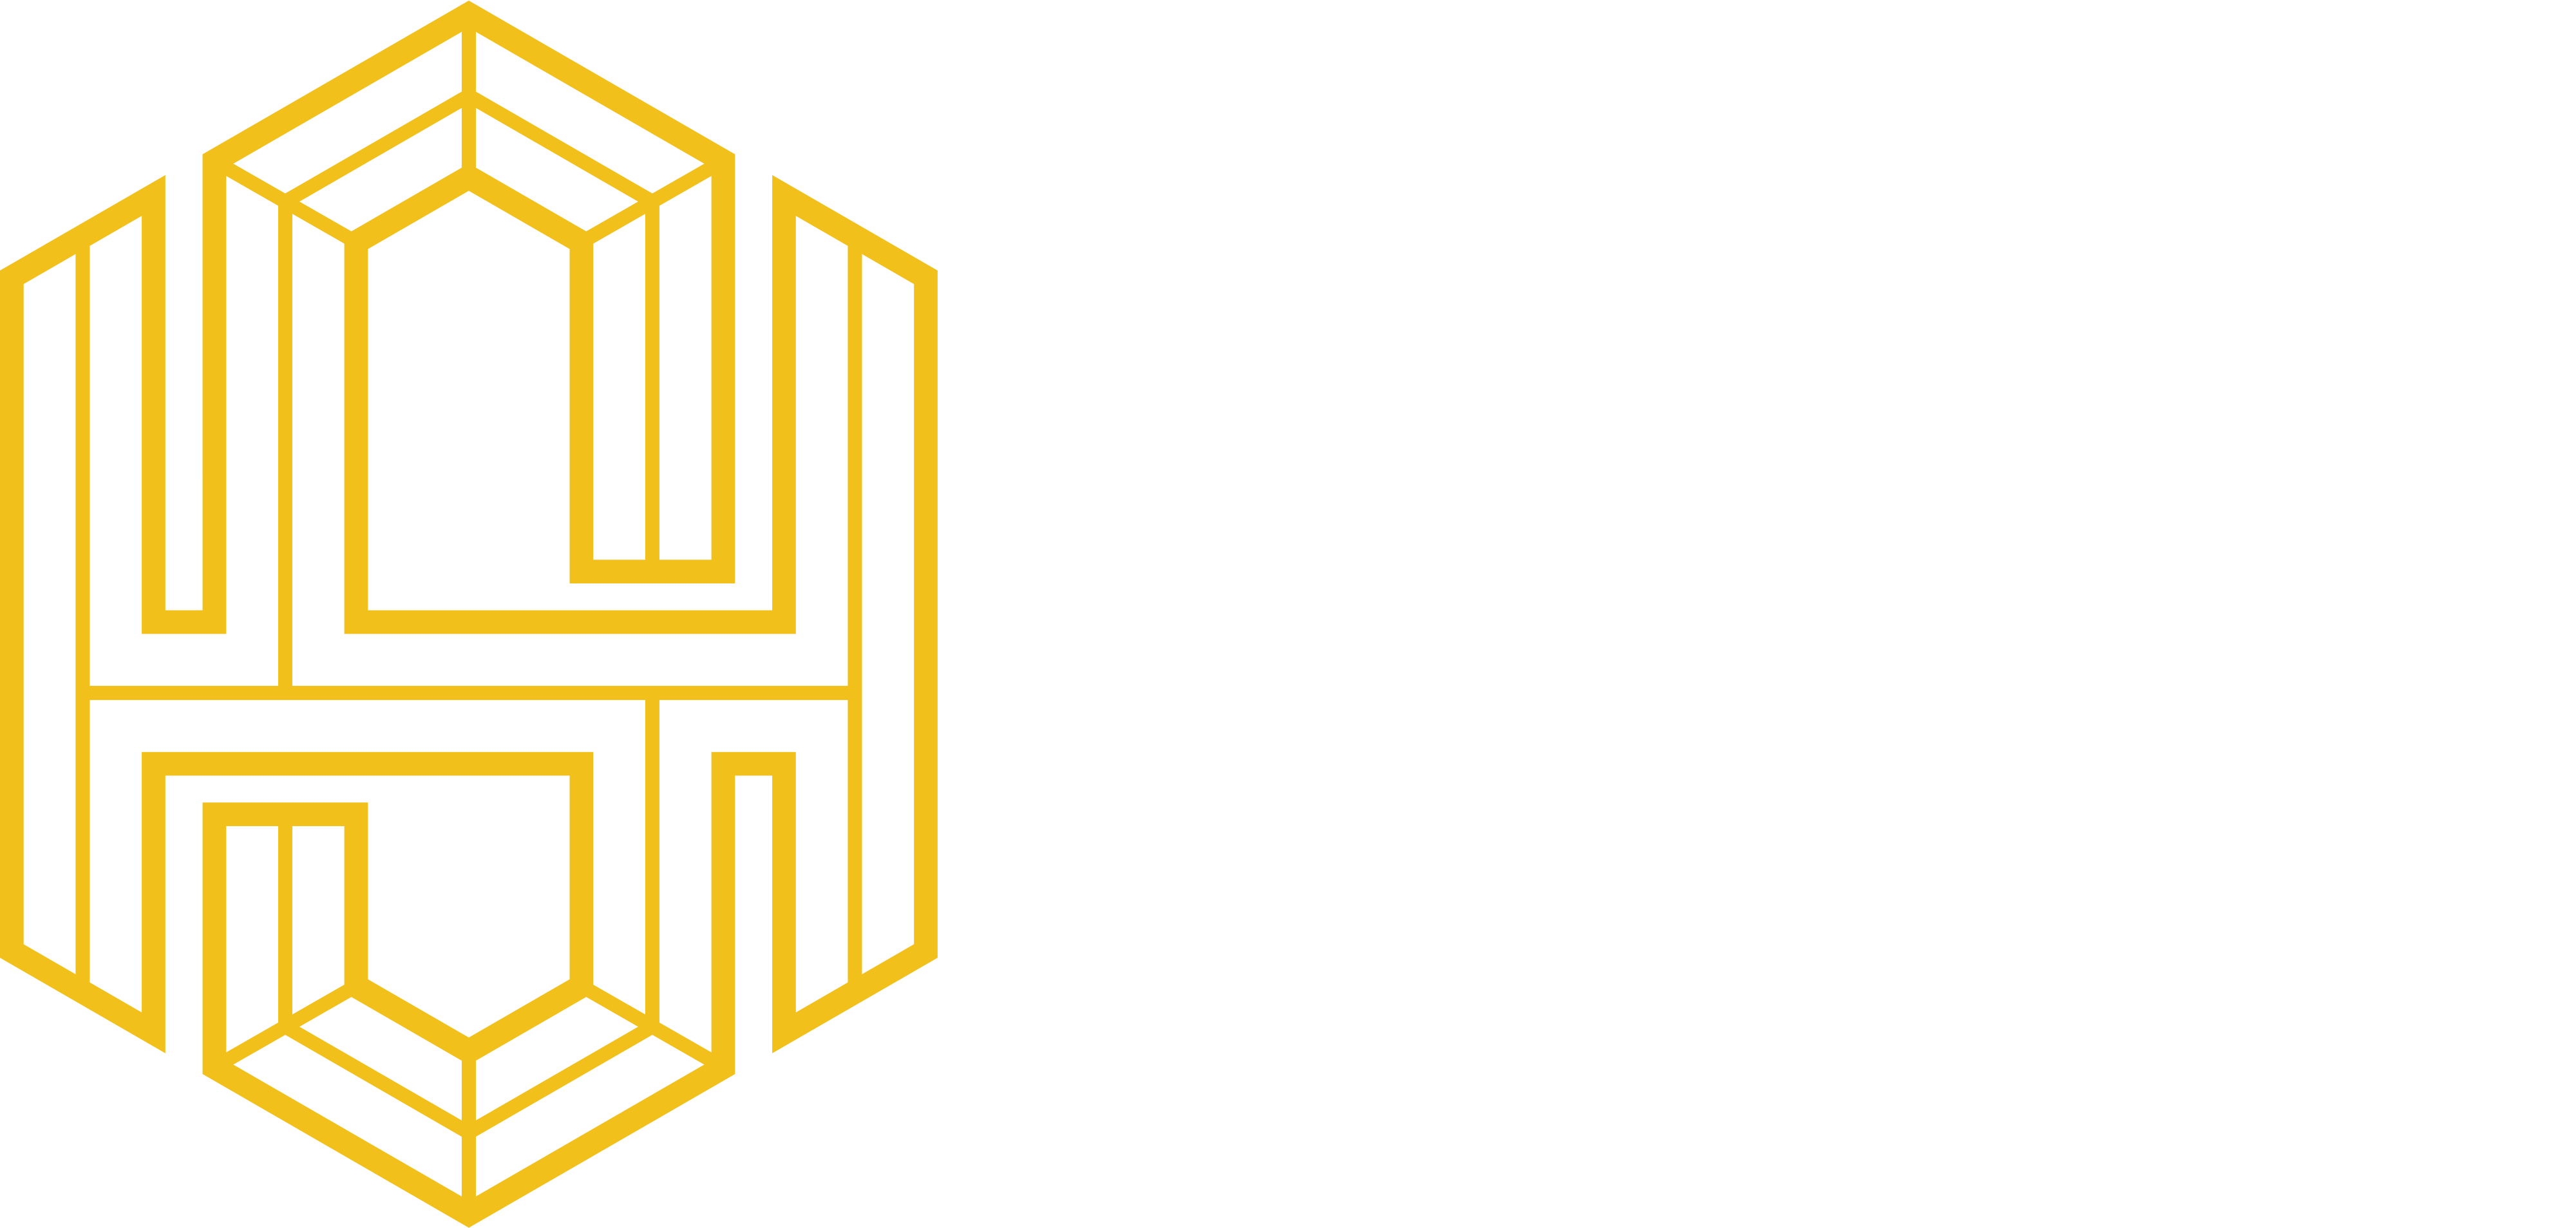 H&S Building Solutions